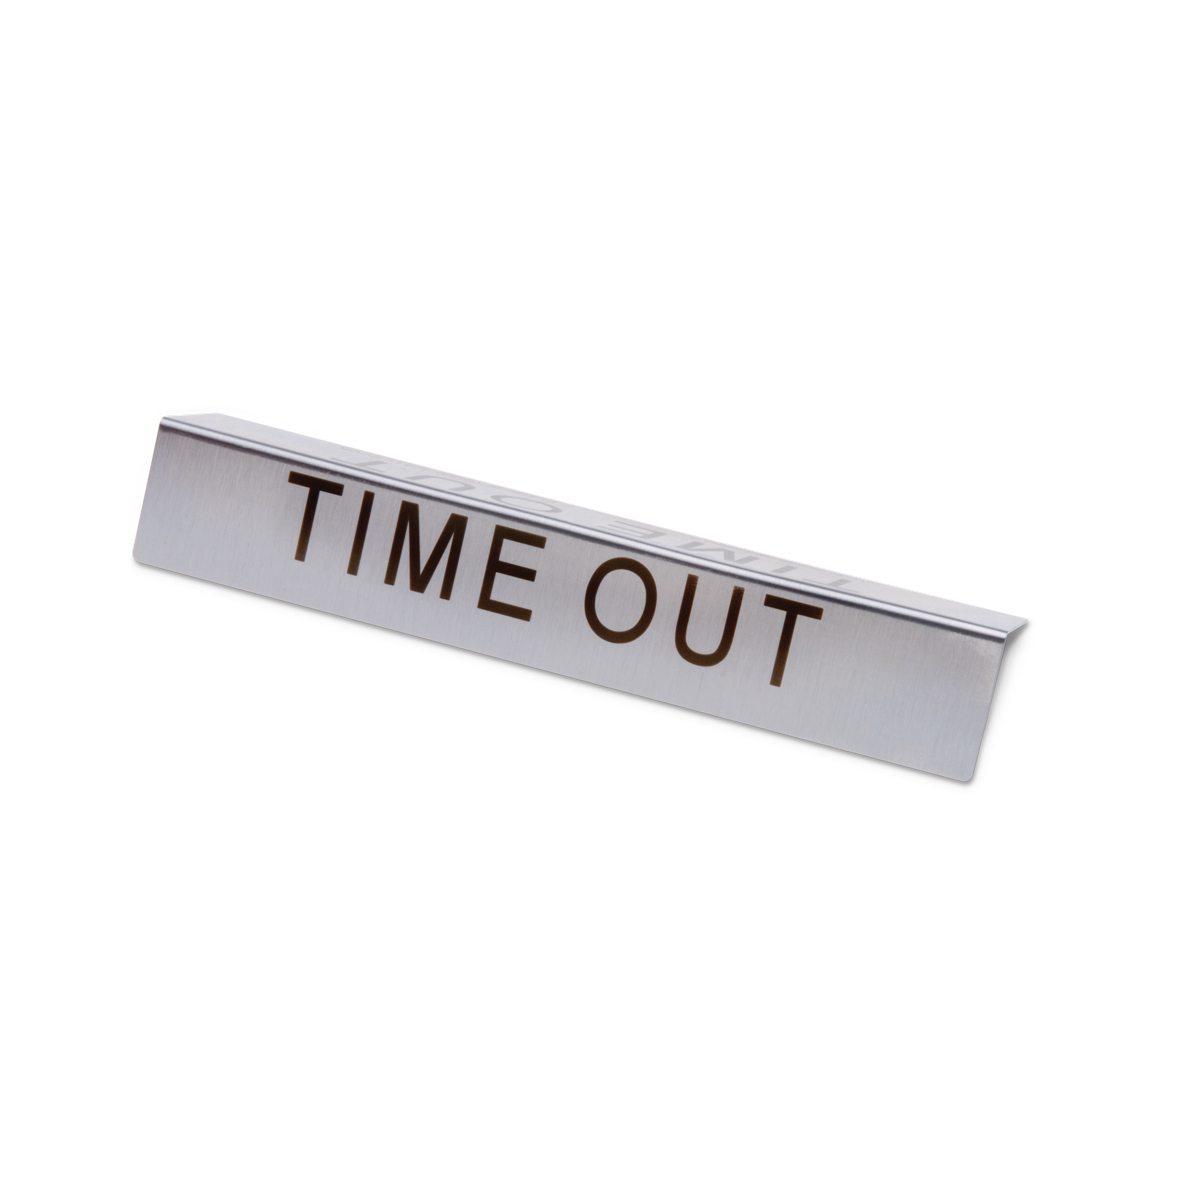 Time Out Visual Image